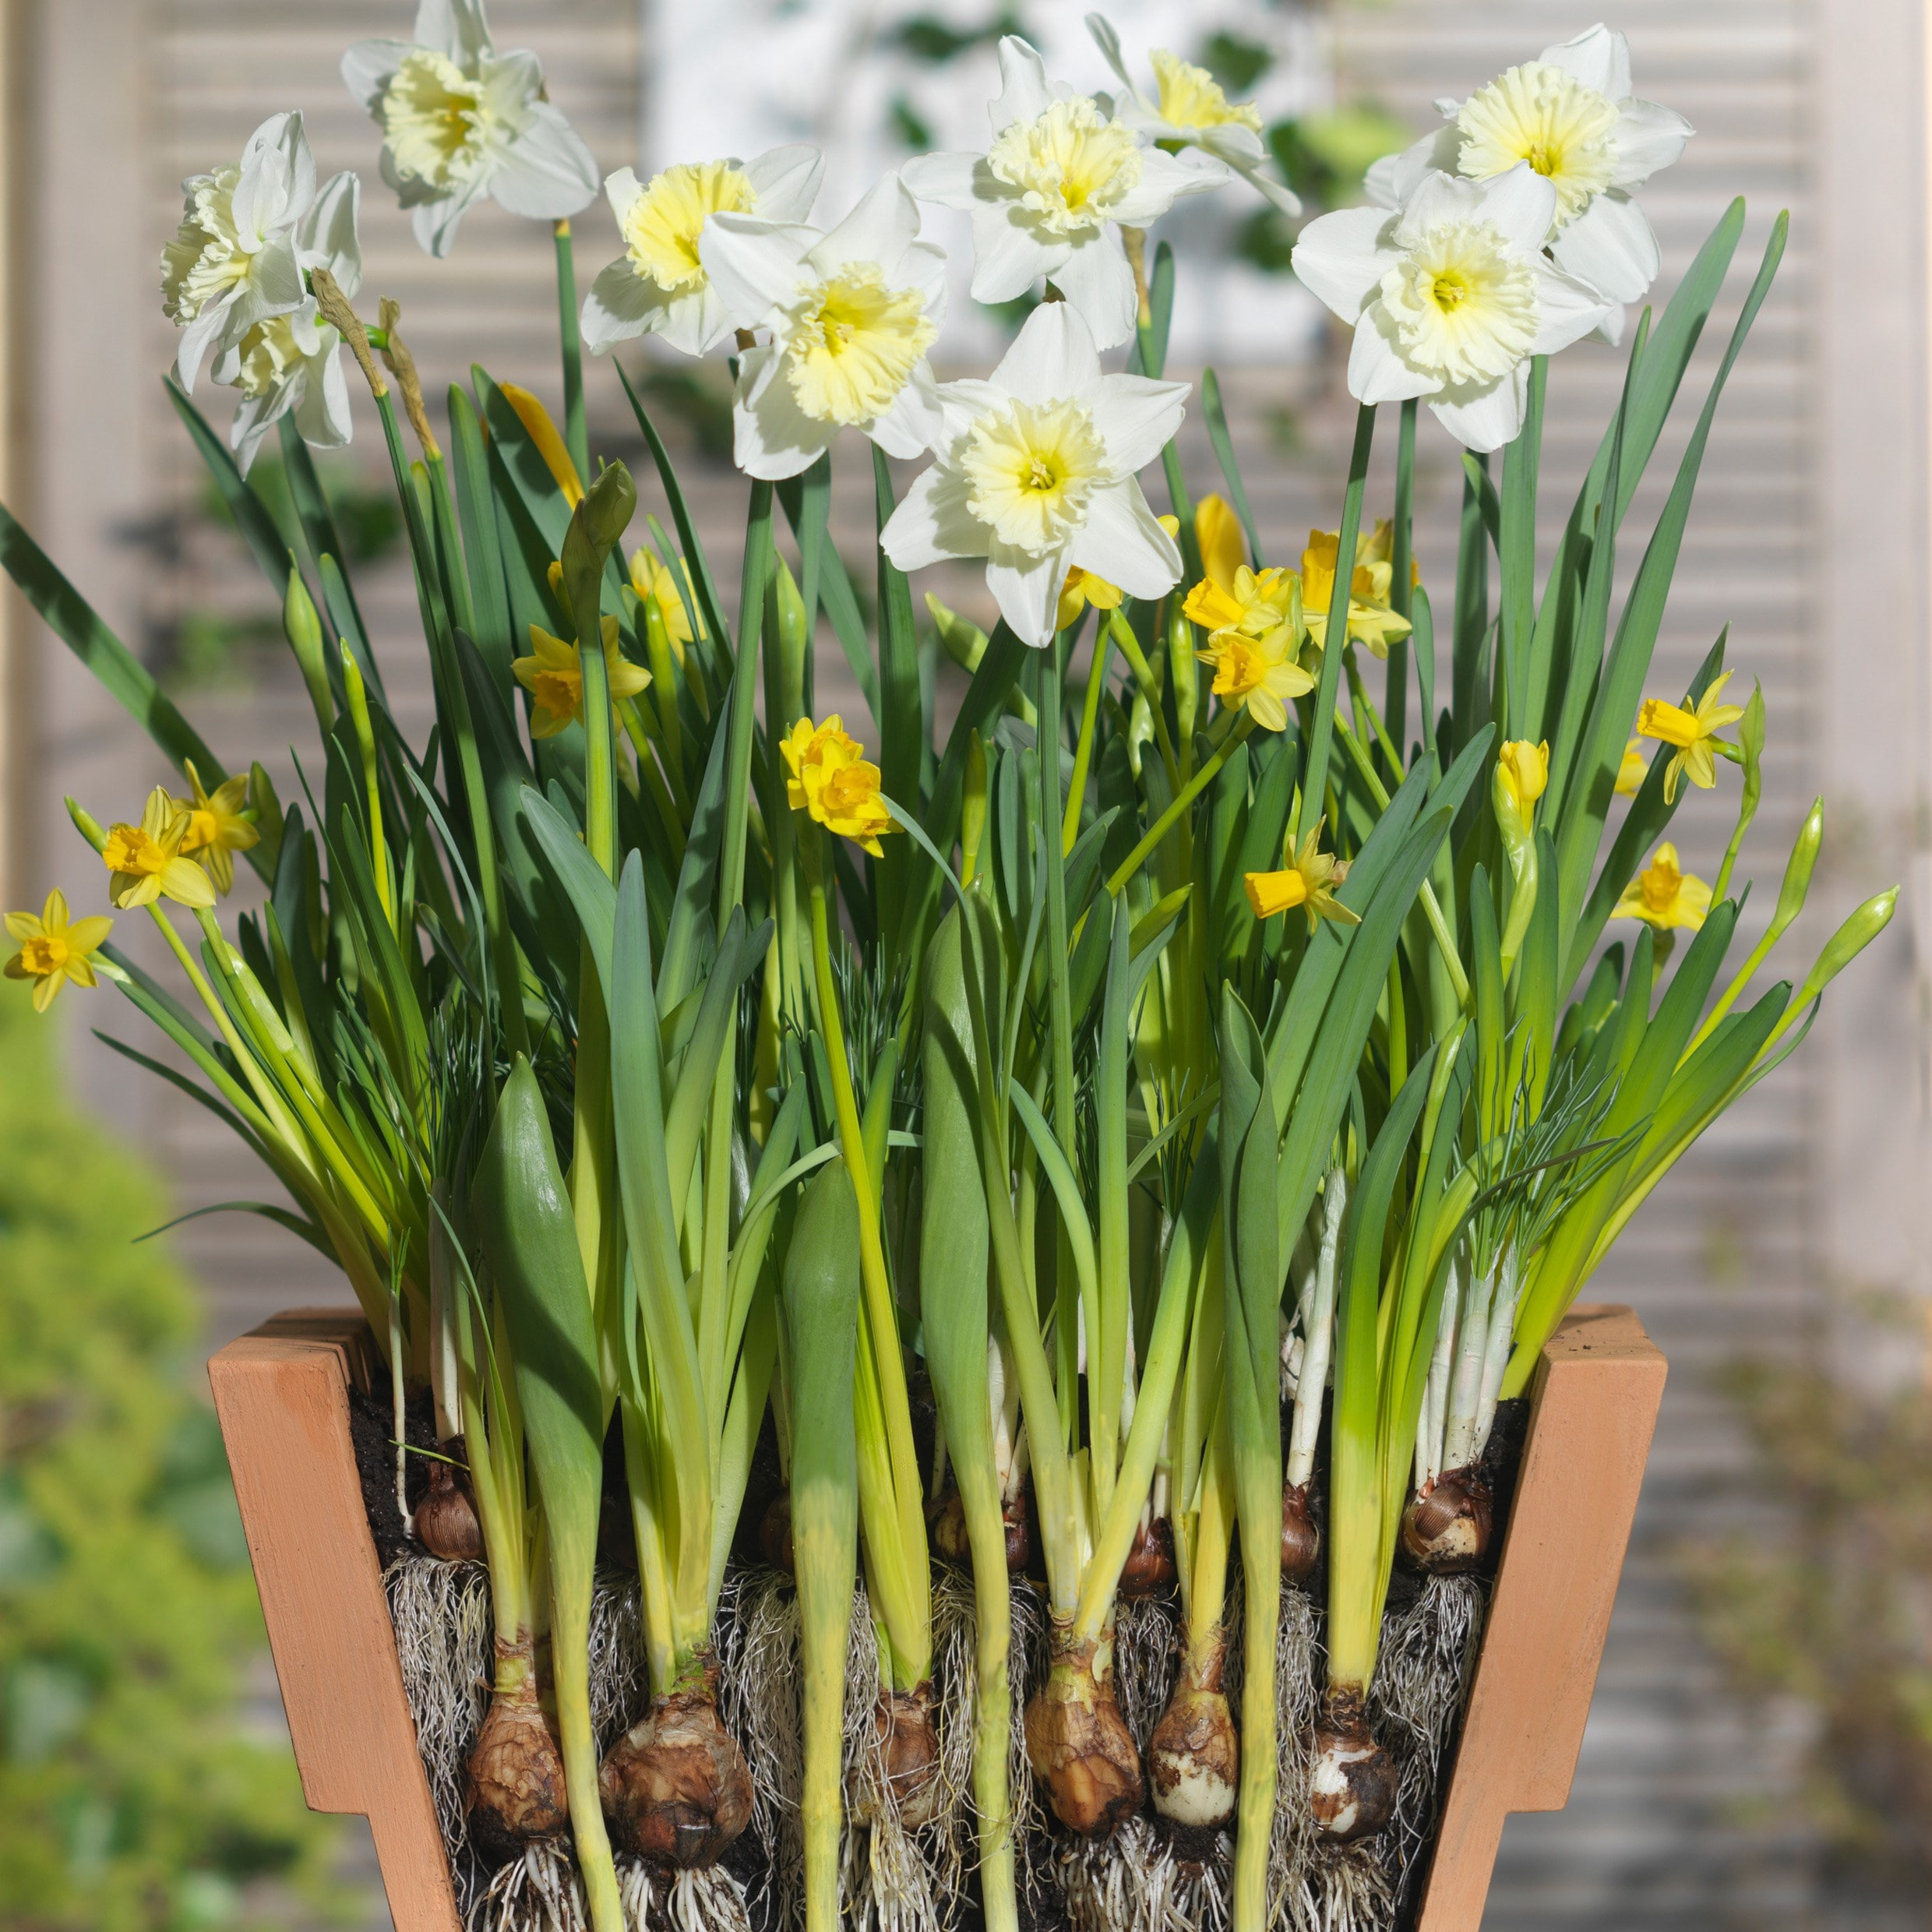 Buy bulb lasagne collection for pots bulbs for pots - 'cream.